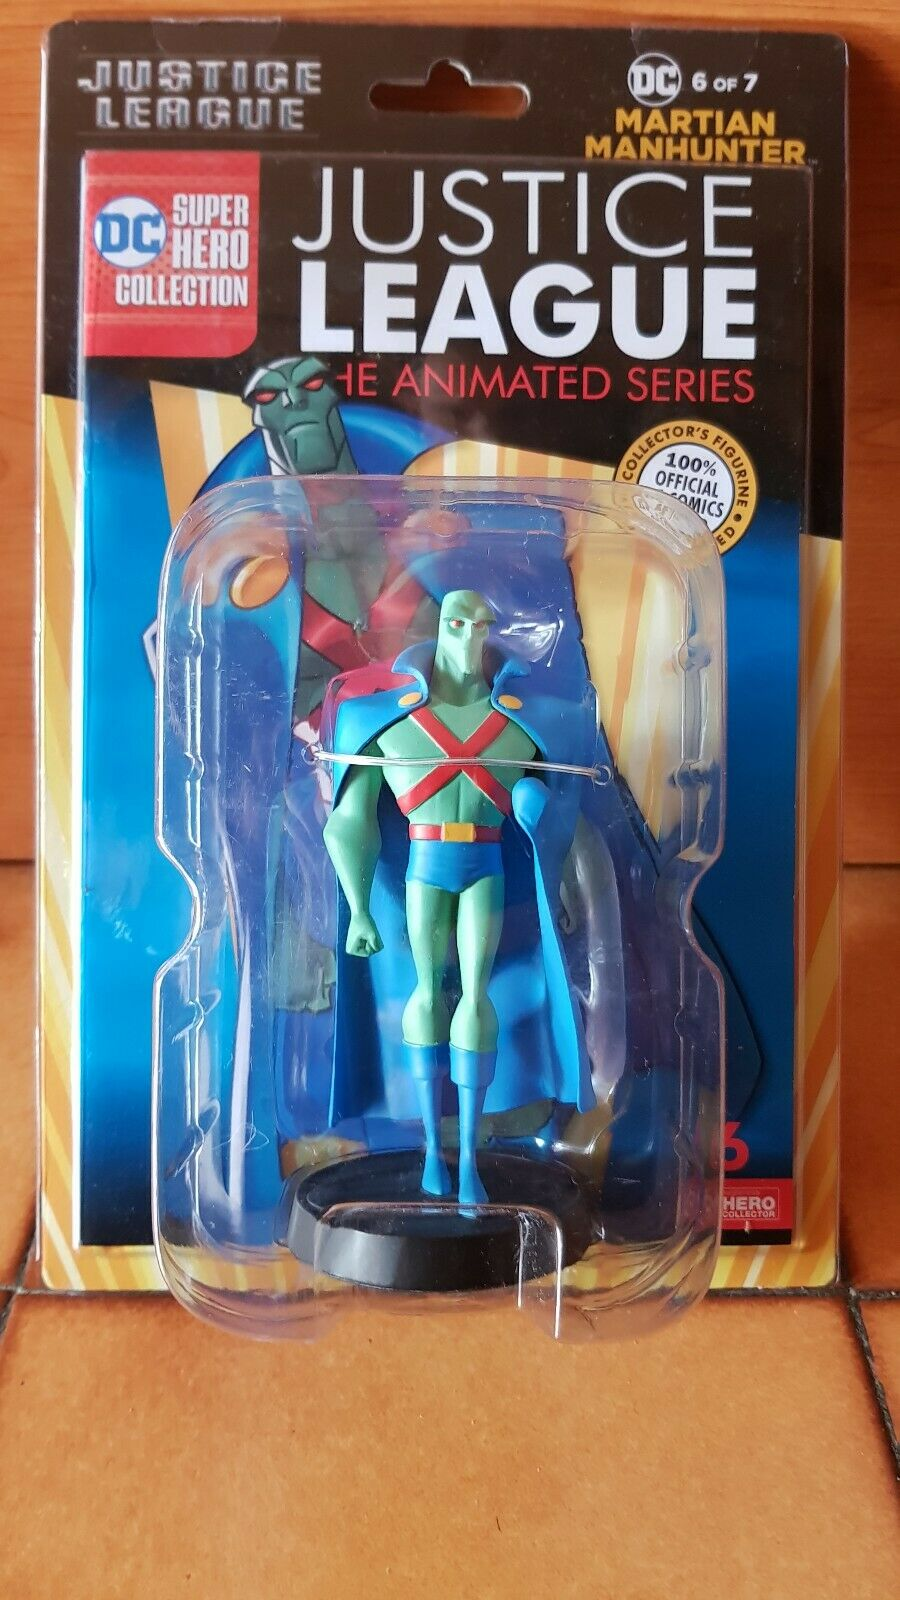 Martian uomohunter Statue Animated  Series  outlet